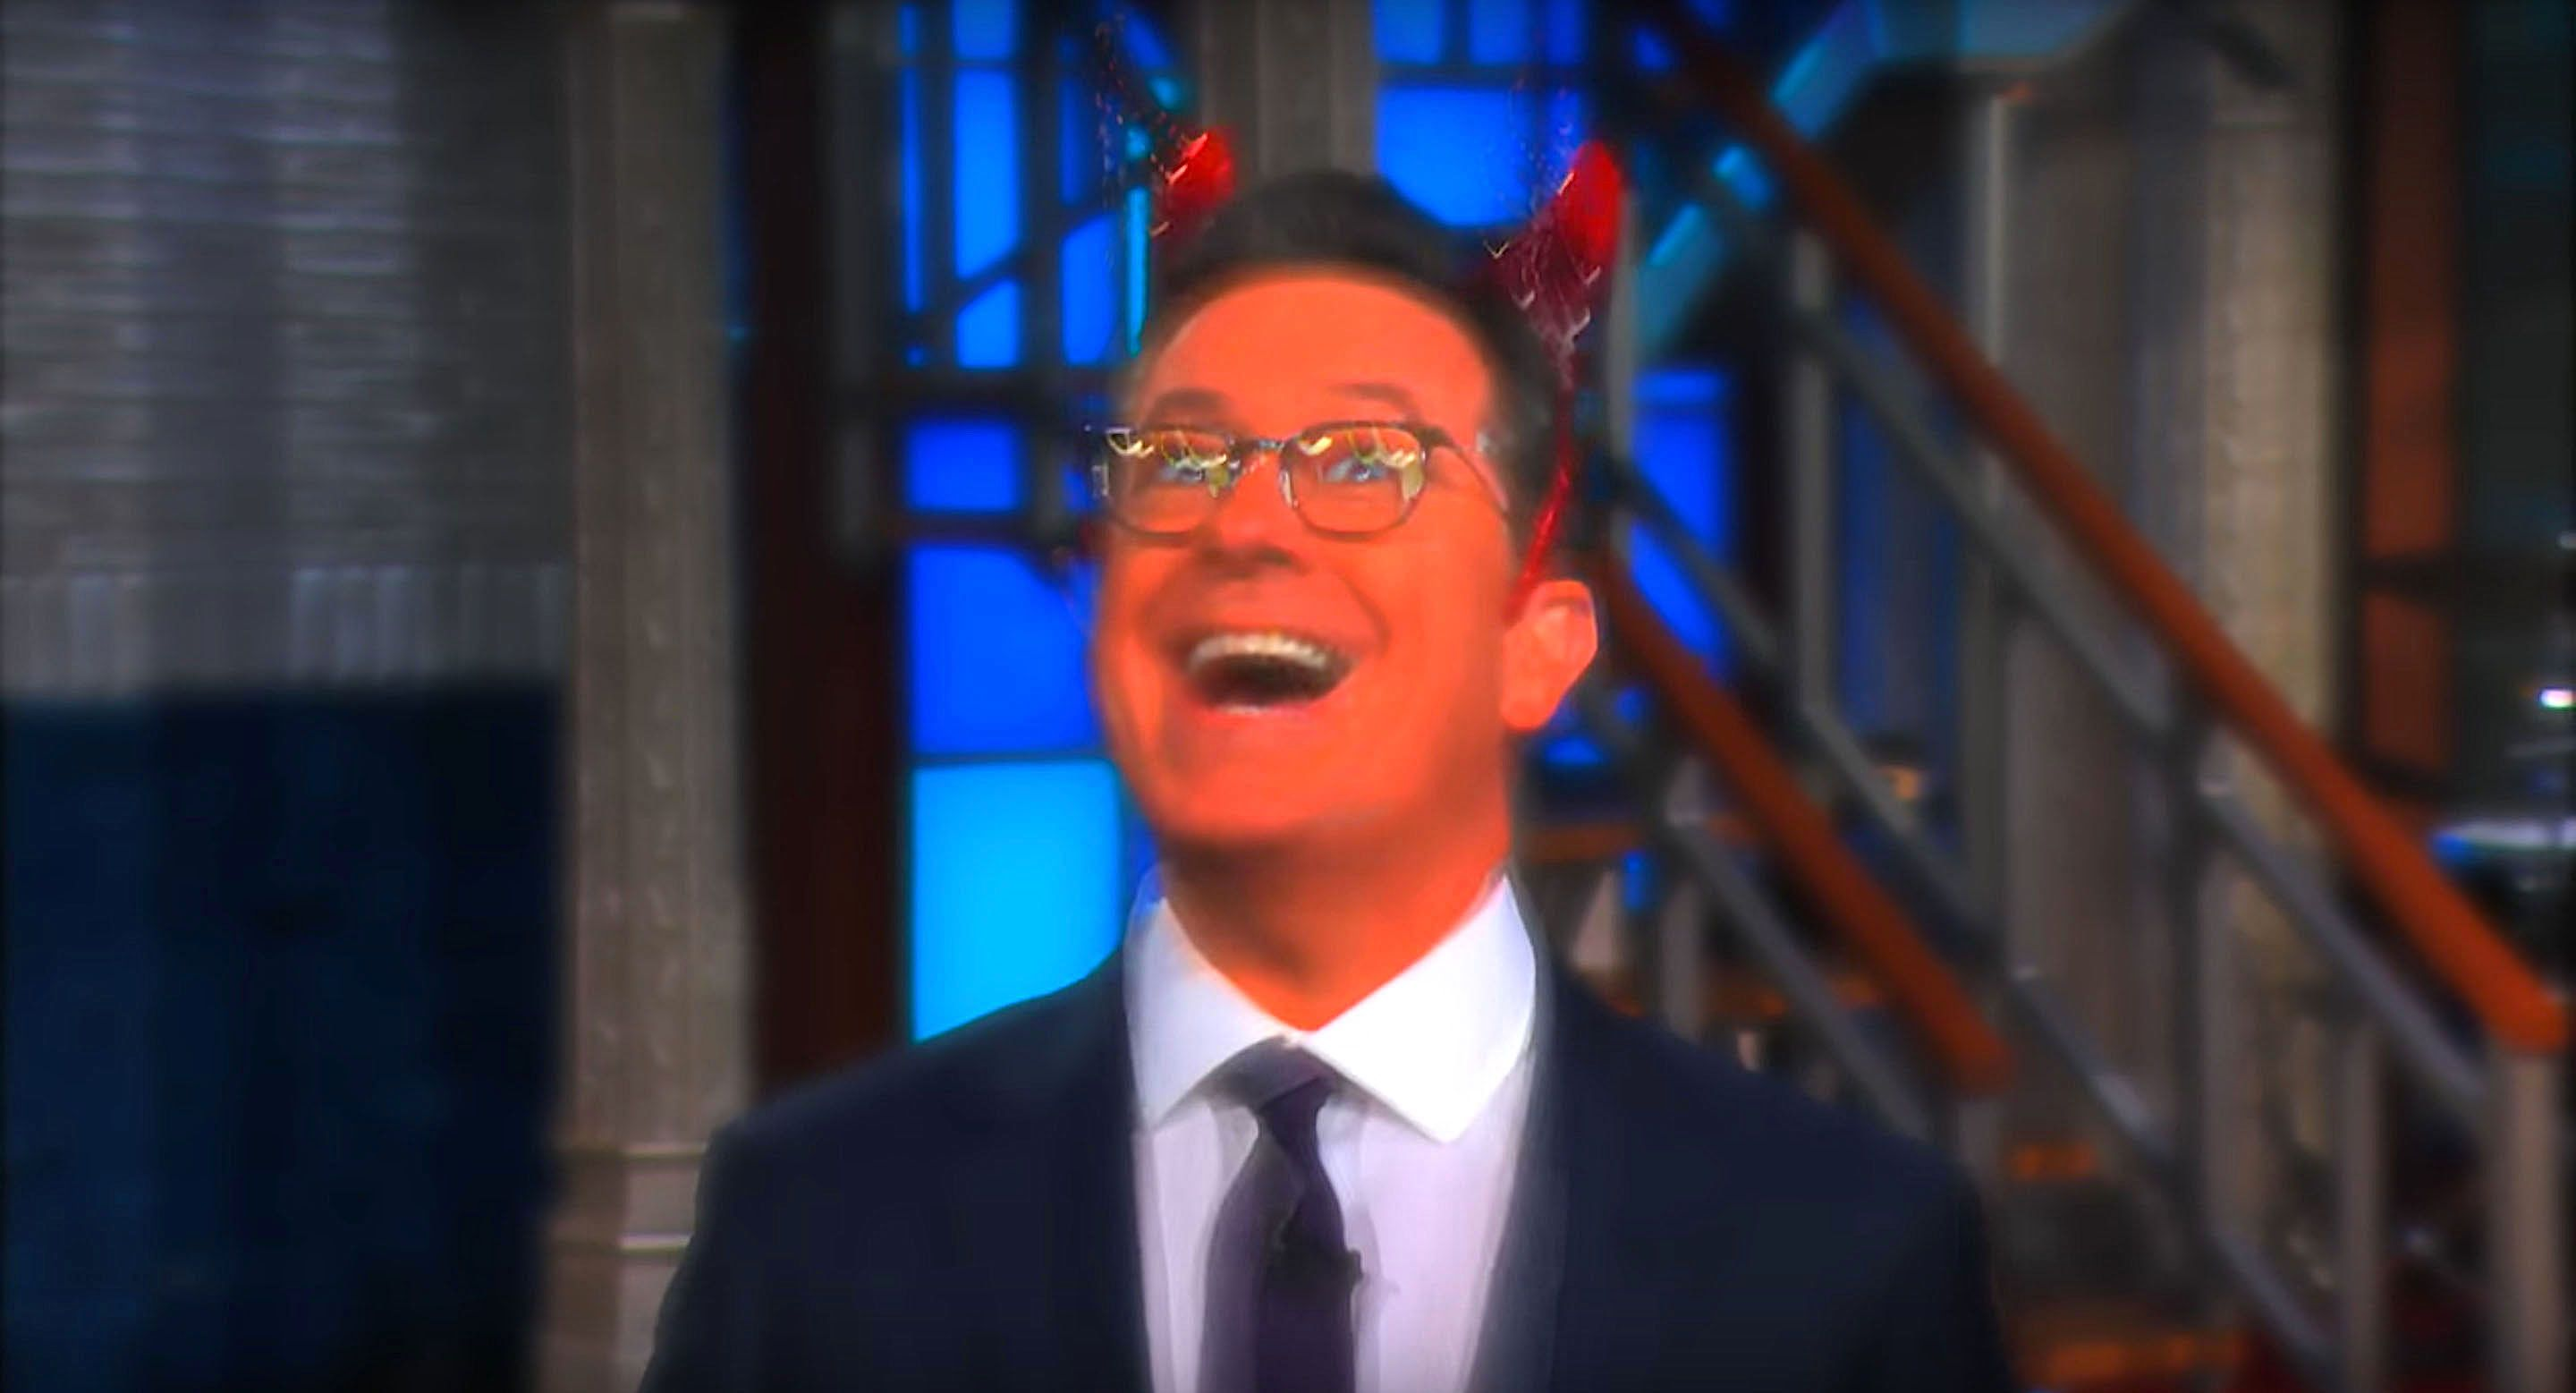 Stephen Colbert plays the devils advocate on the issue of separating immigrant families